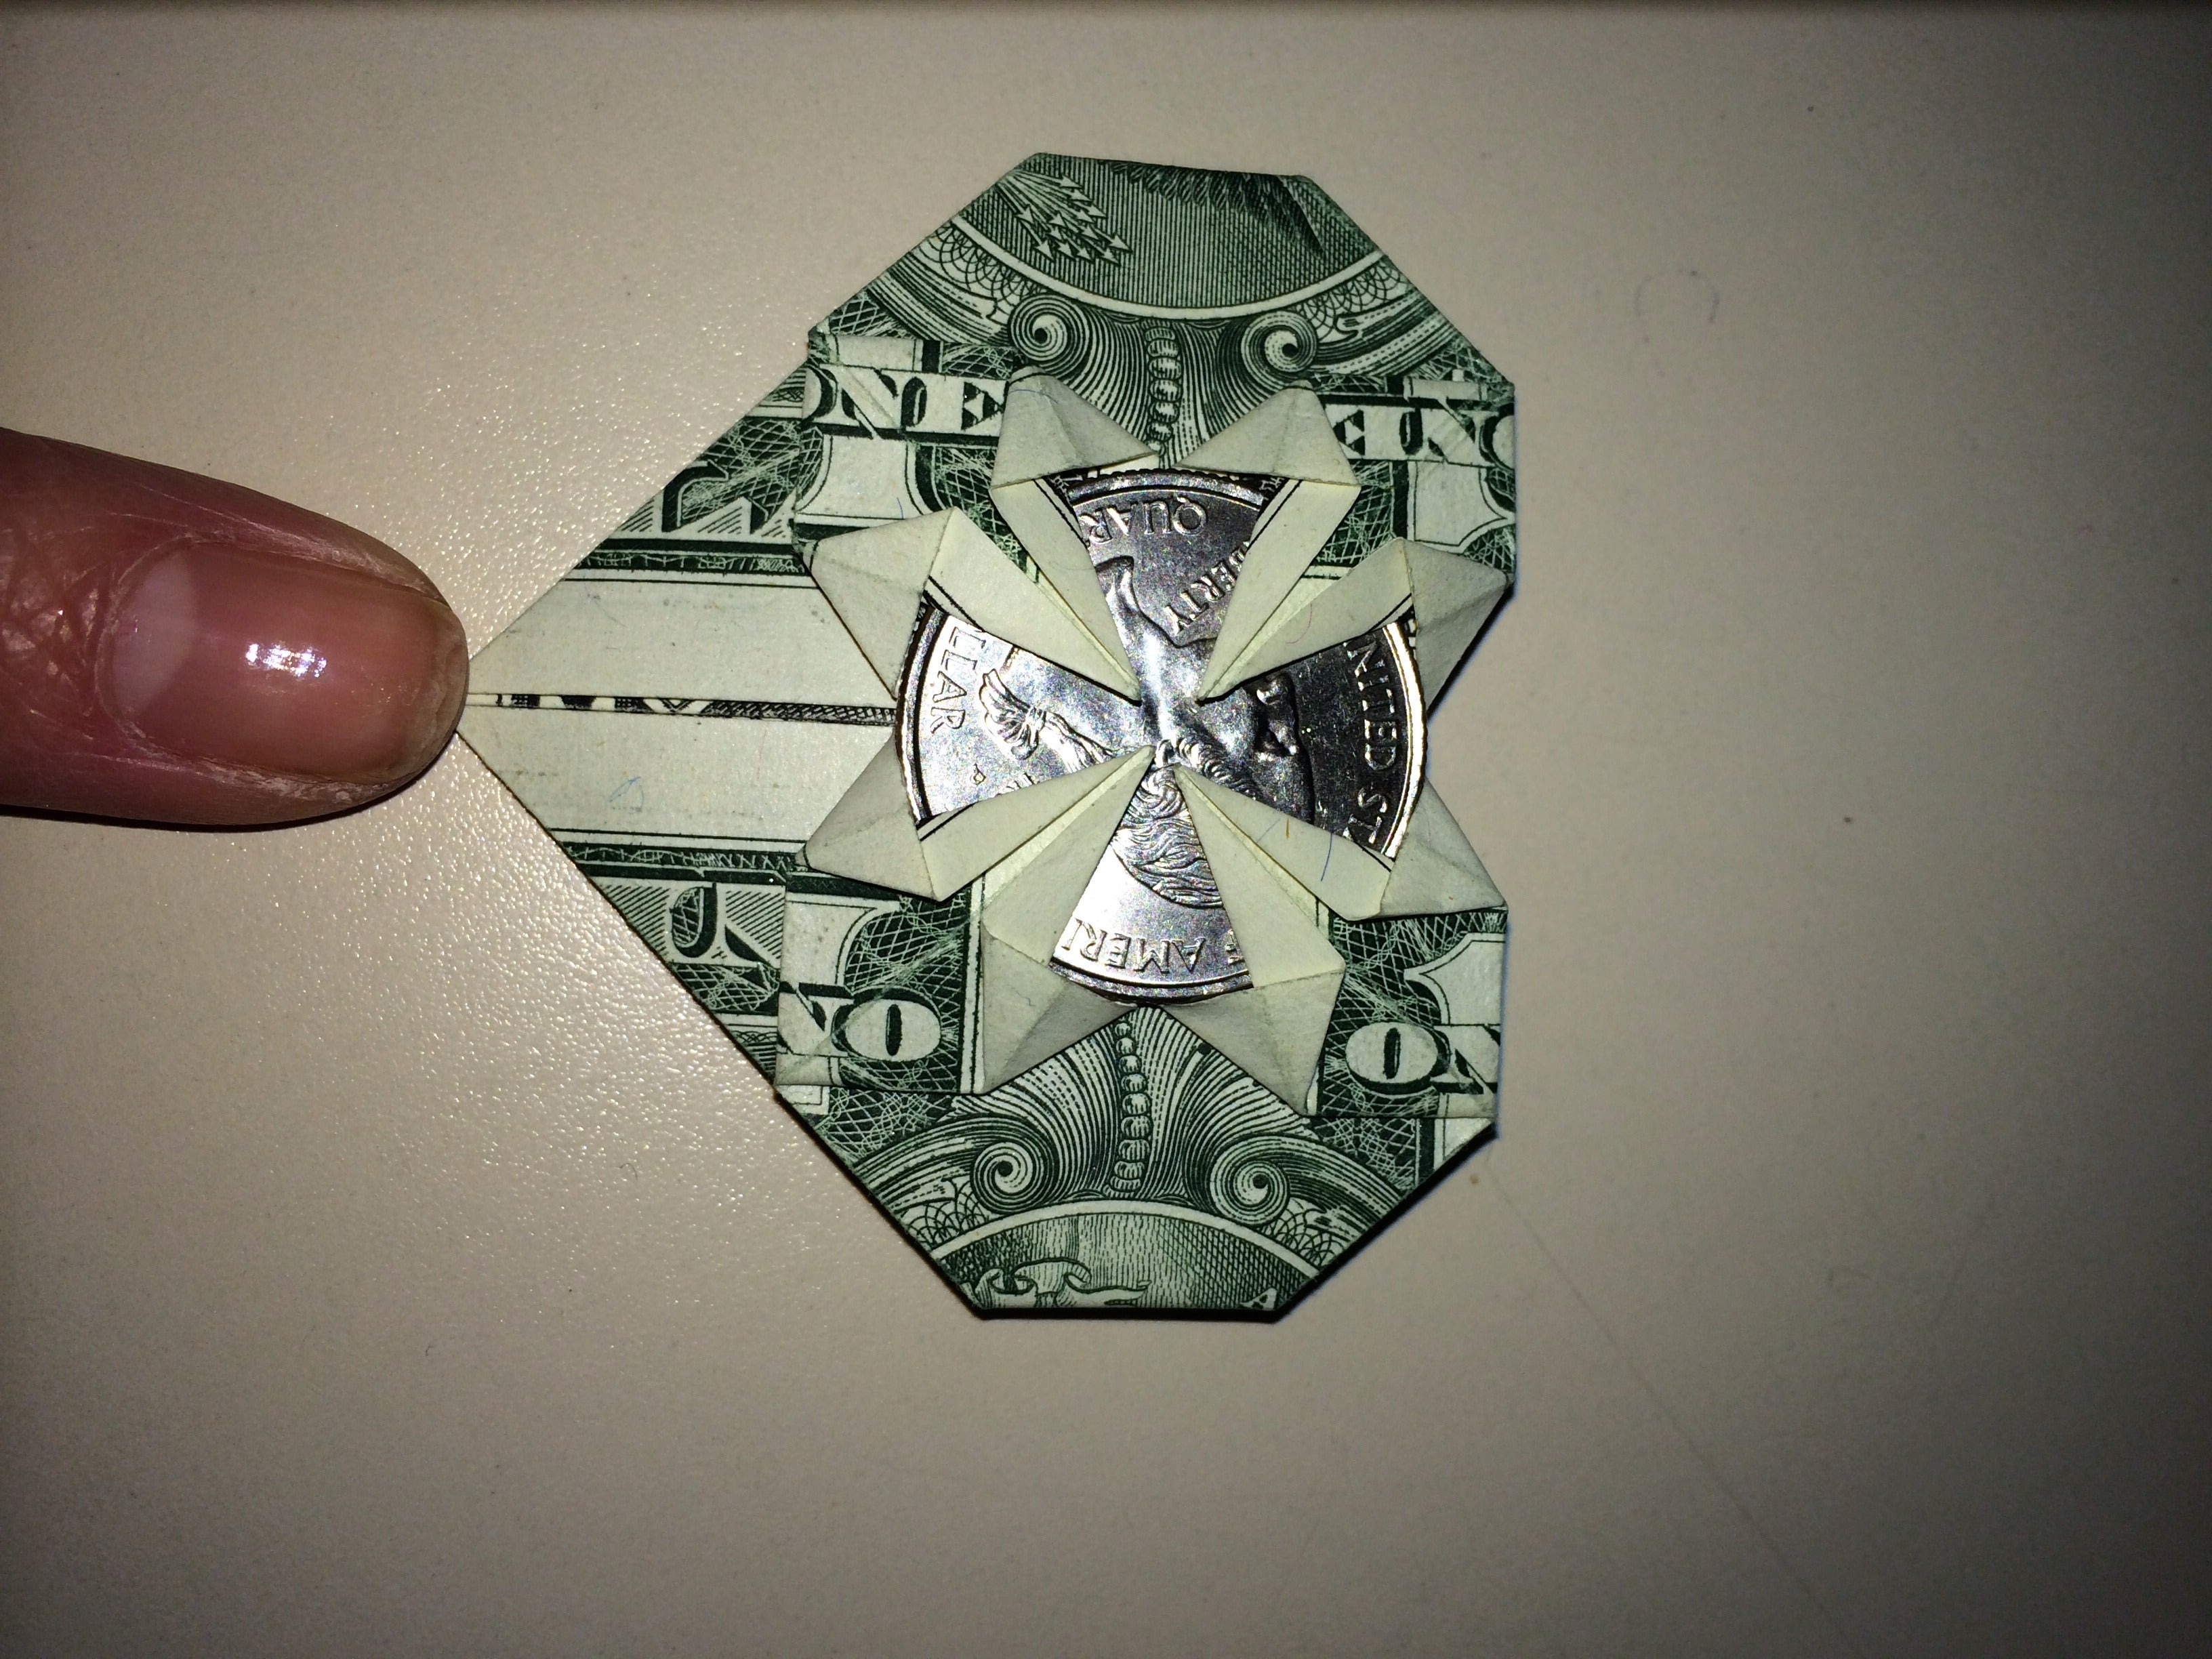 Decorative Money Origami Heart: Video Tutorial and Picture ... | 2448x3264